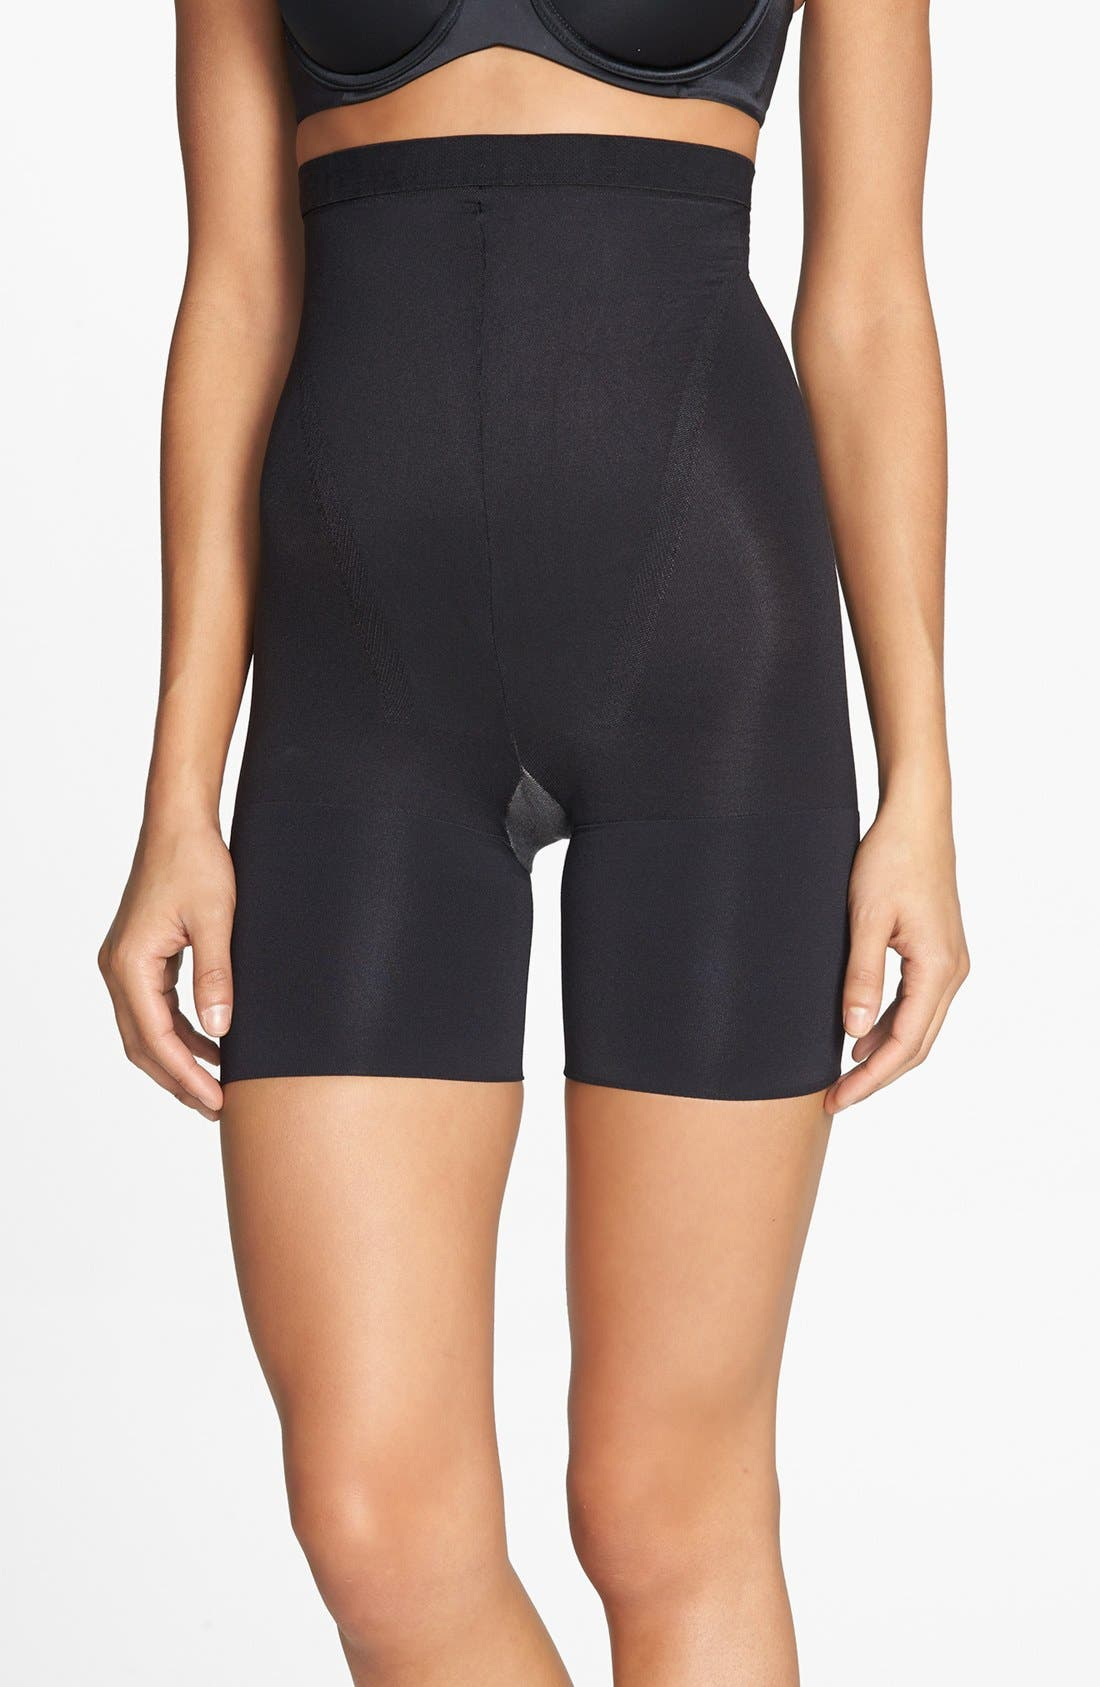 Main Image - SPANX® 'In-Power Line' Super Higher Power Tummy Control Shaper (Regular & Plus Size) (Online Only)